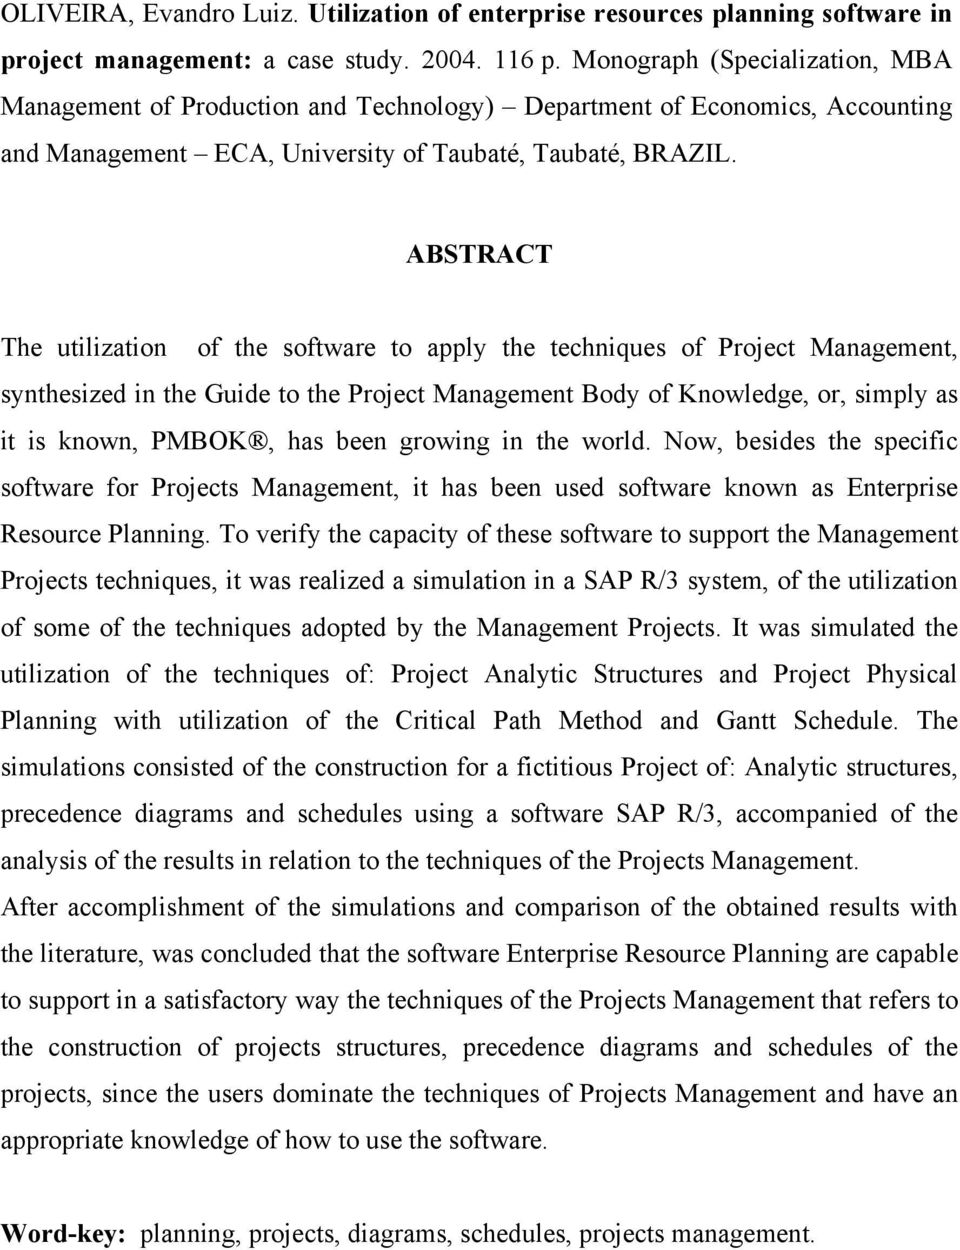 ABSTRACT The utilization of the software to apply the techniques of Project Management, synthesized in the Guide to the Project Management Body of Knowledge, or, simply as it is known, PMBOK, has